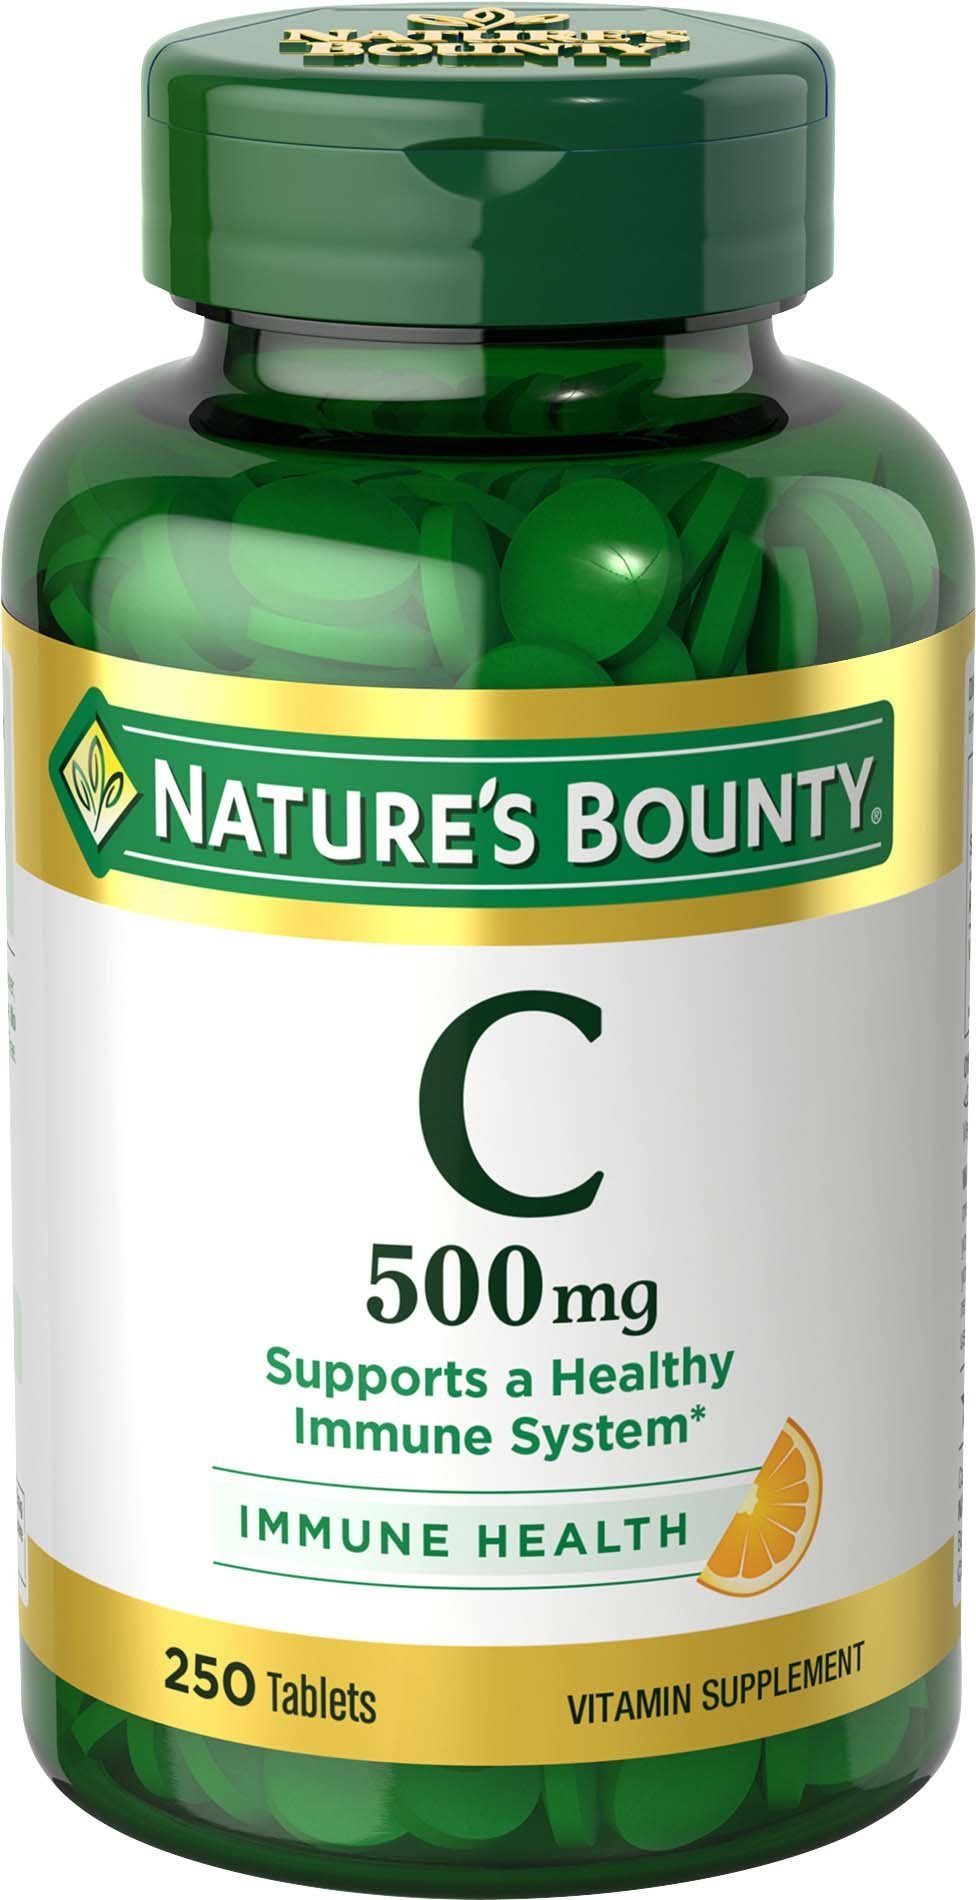 Nature's Bounty Vitamin C, 500mg, 250 Tablets, Vitamin Supplement for Immune System Support(1), Antioxidant(1), Gluten Free, Vegetarian